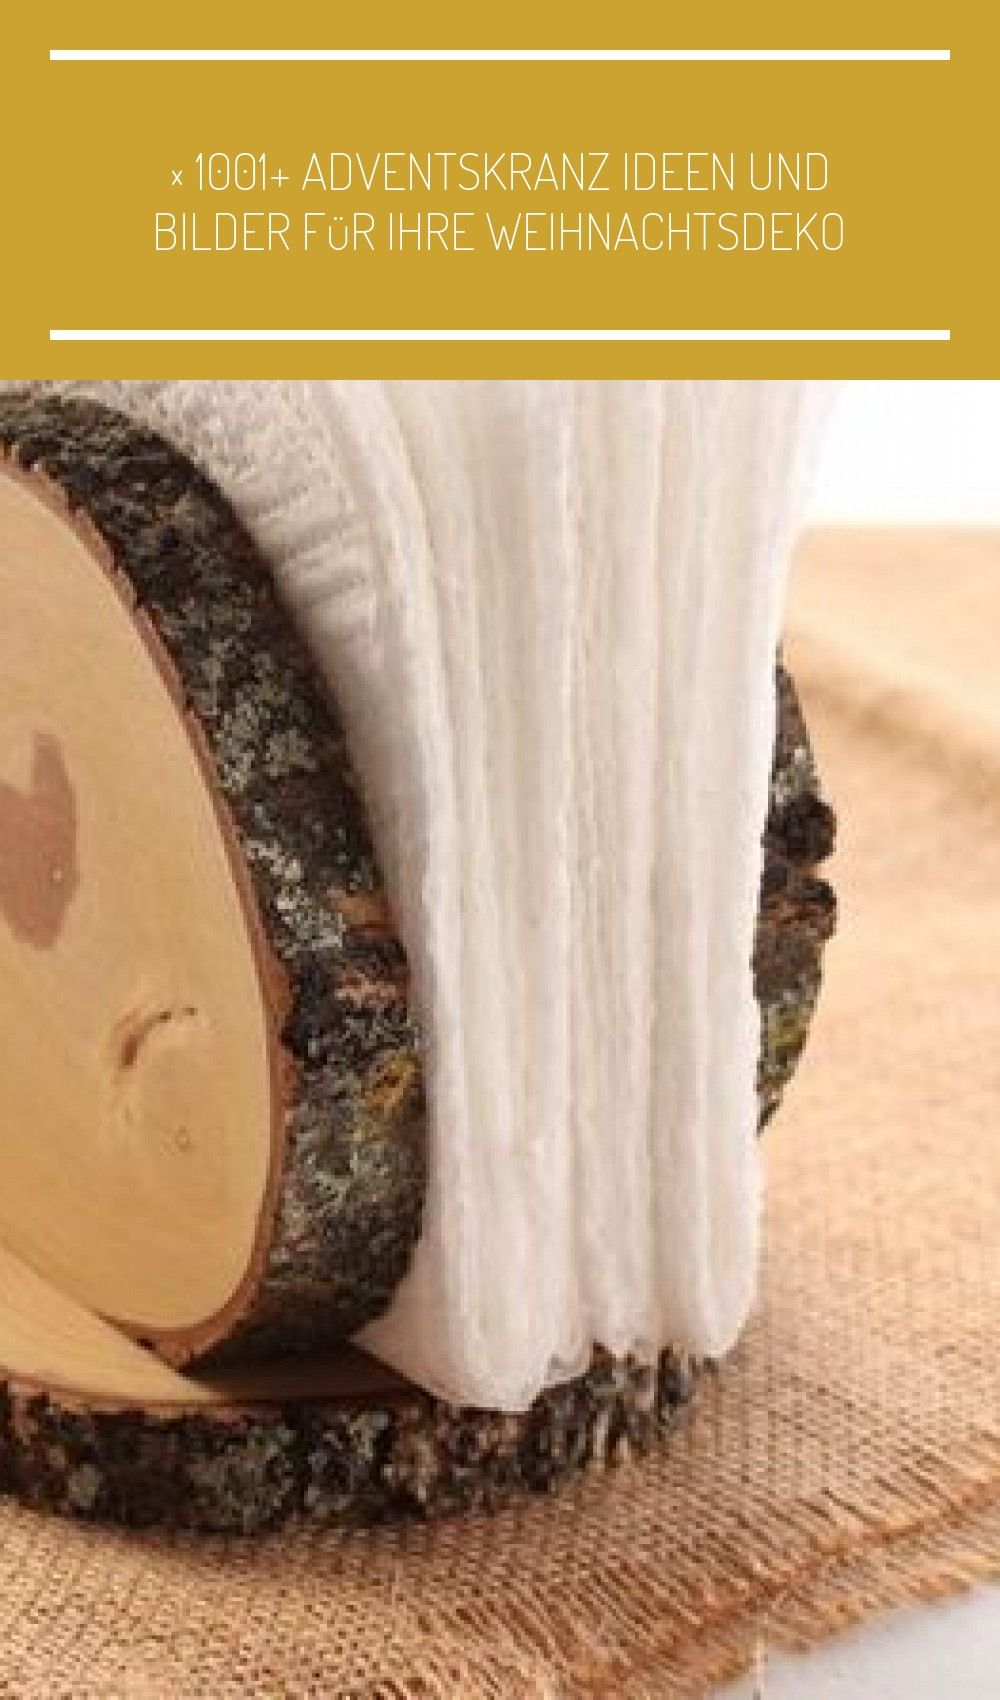 20 brilliant ideas for transforming wooden disks and logs …